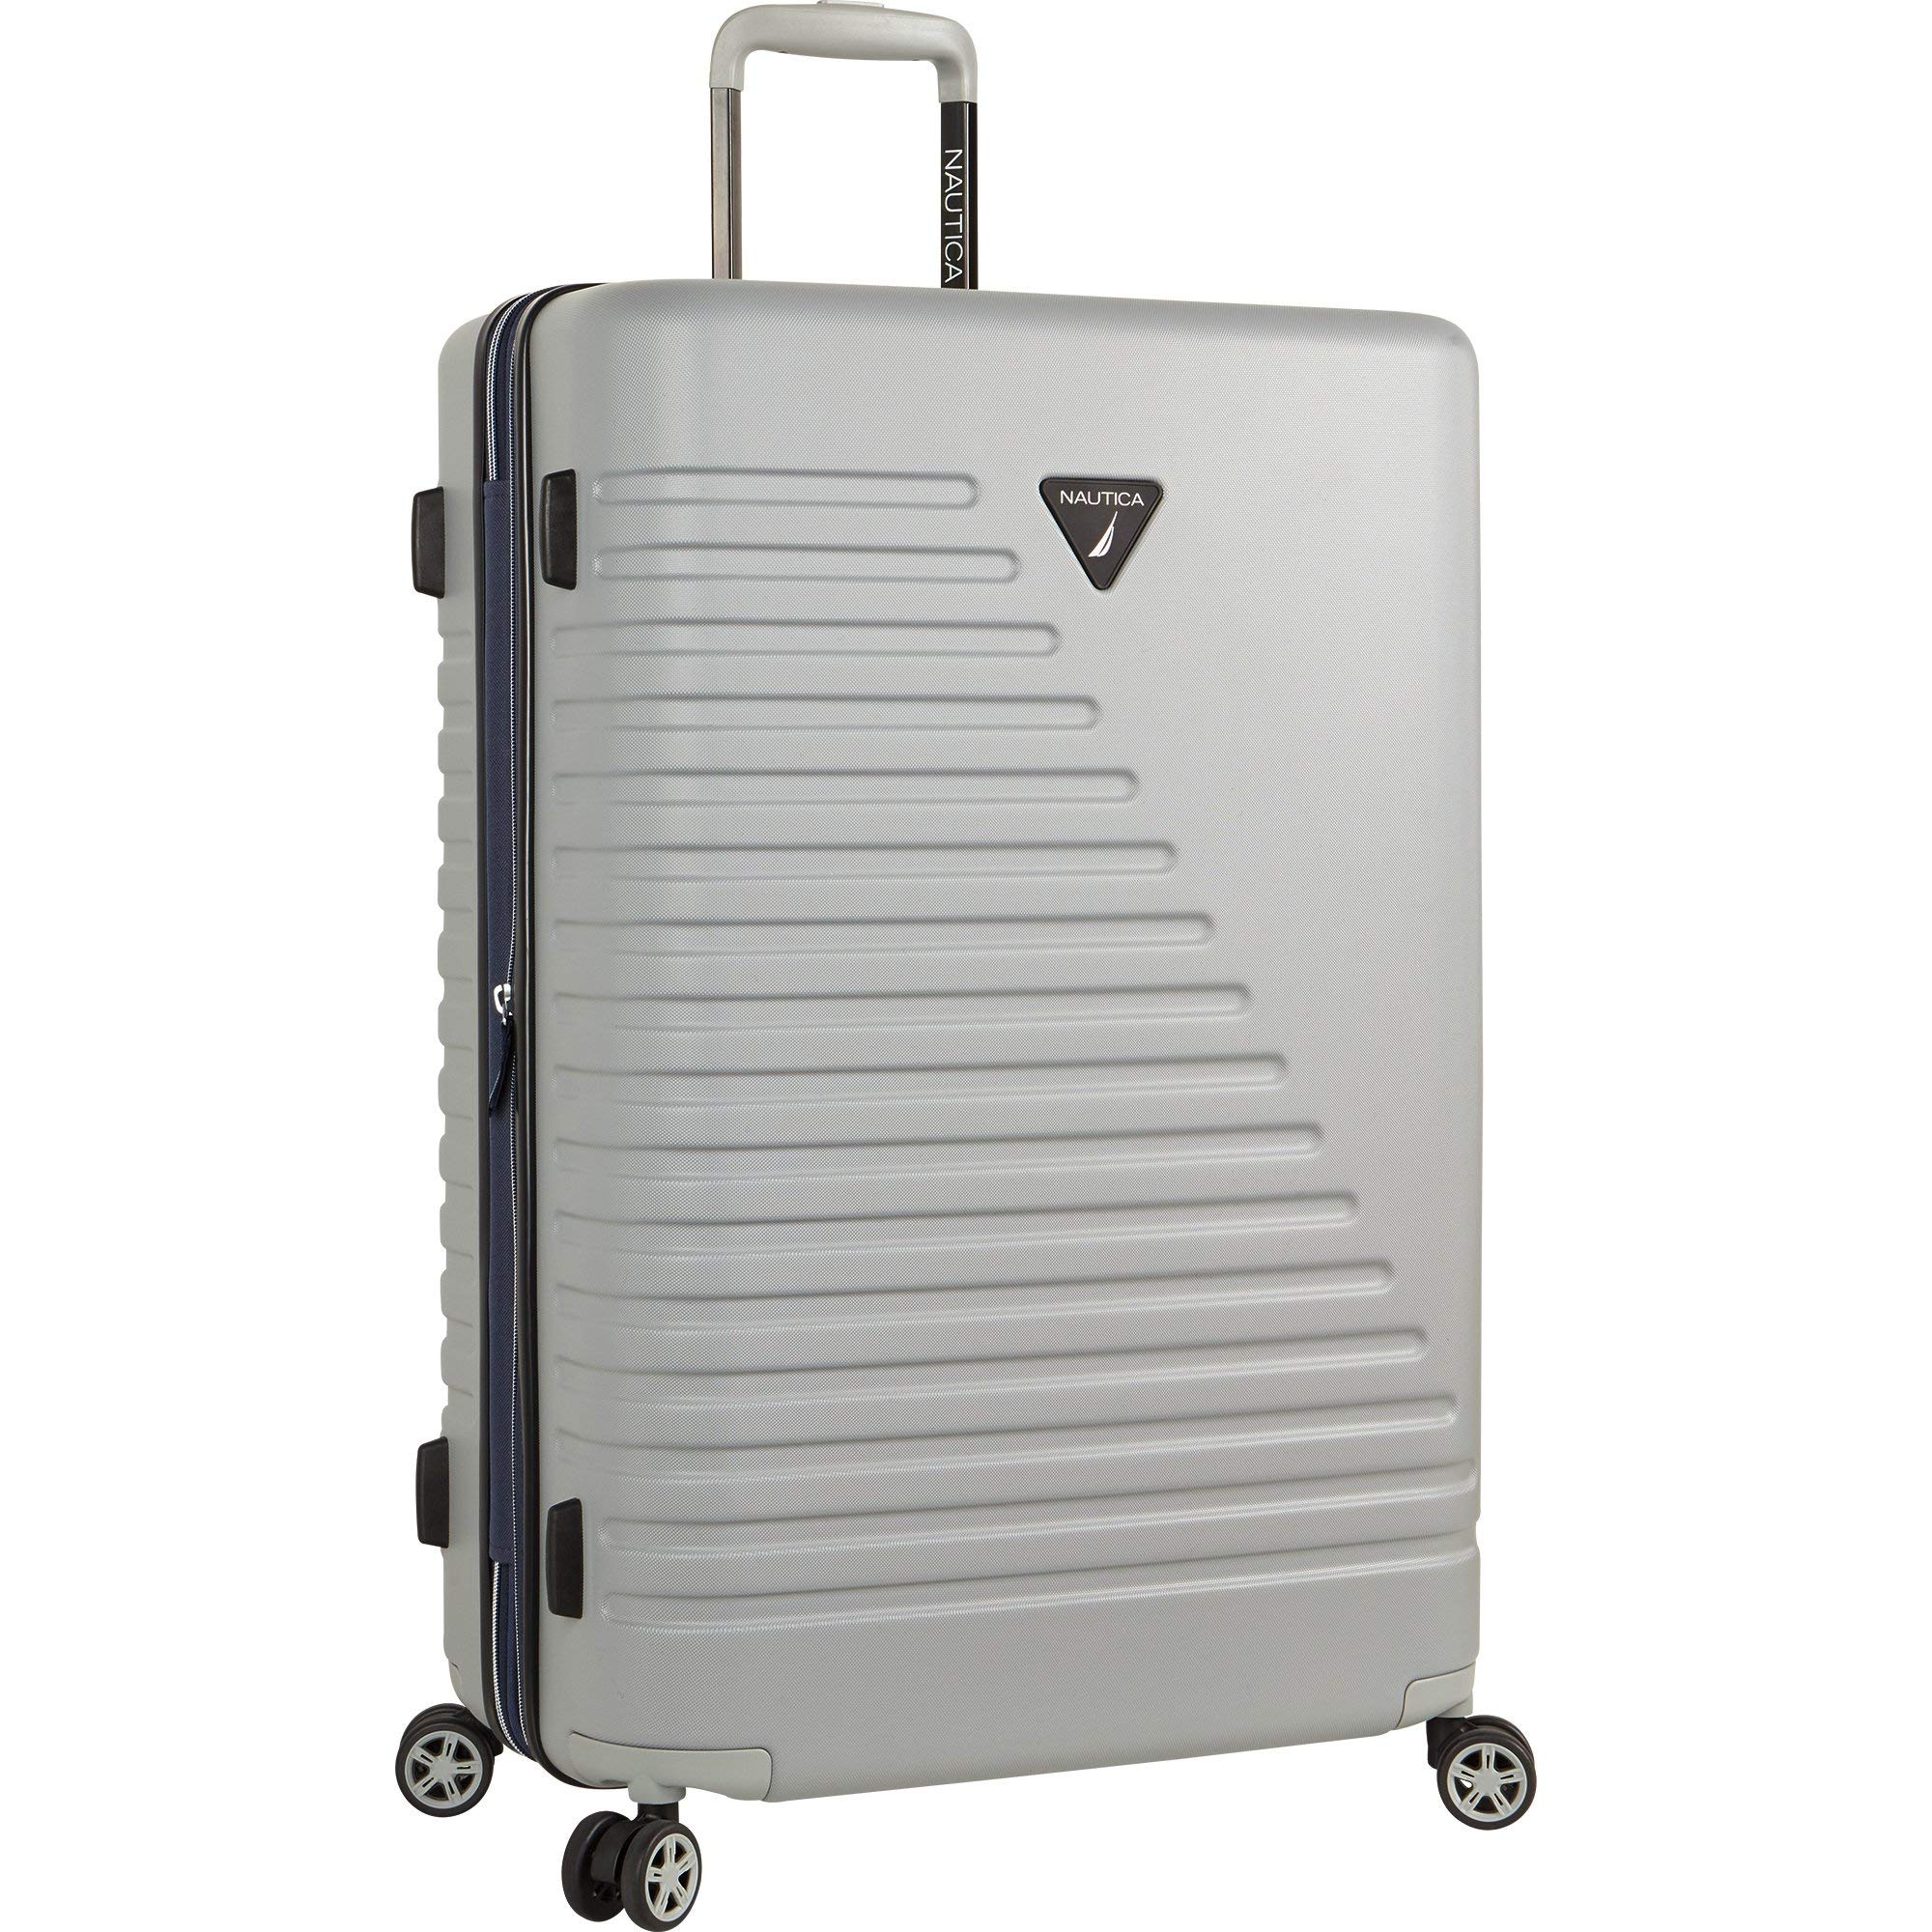 Nautica Ahoy Hardside Expandable 4-Wheeled Luggage-28 Inch Checked Size, Neutral Gray